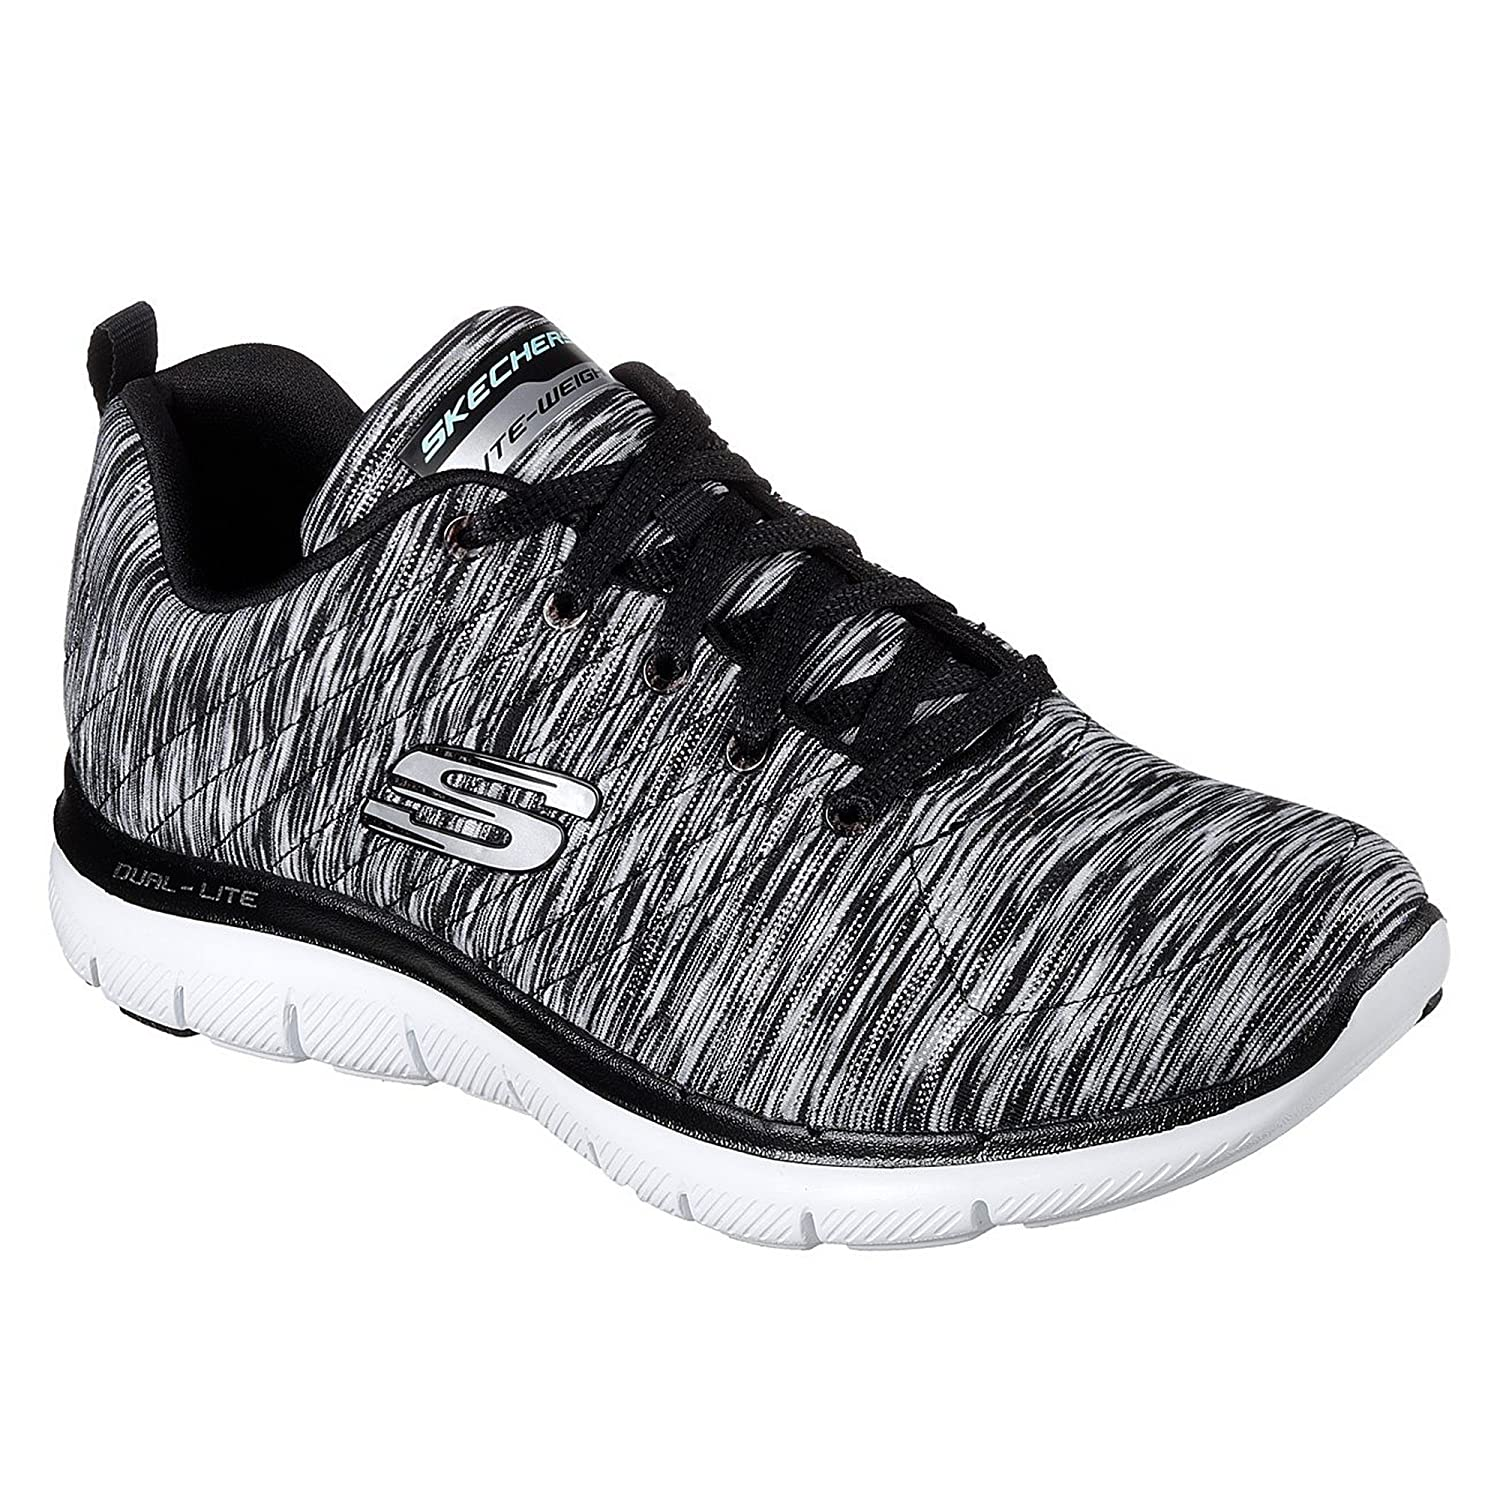 Skechers Flex Appeal 2.0-Reflection, Zapatillas para Mujer 40 EU|Negro /Blanco